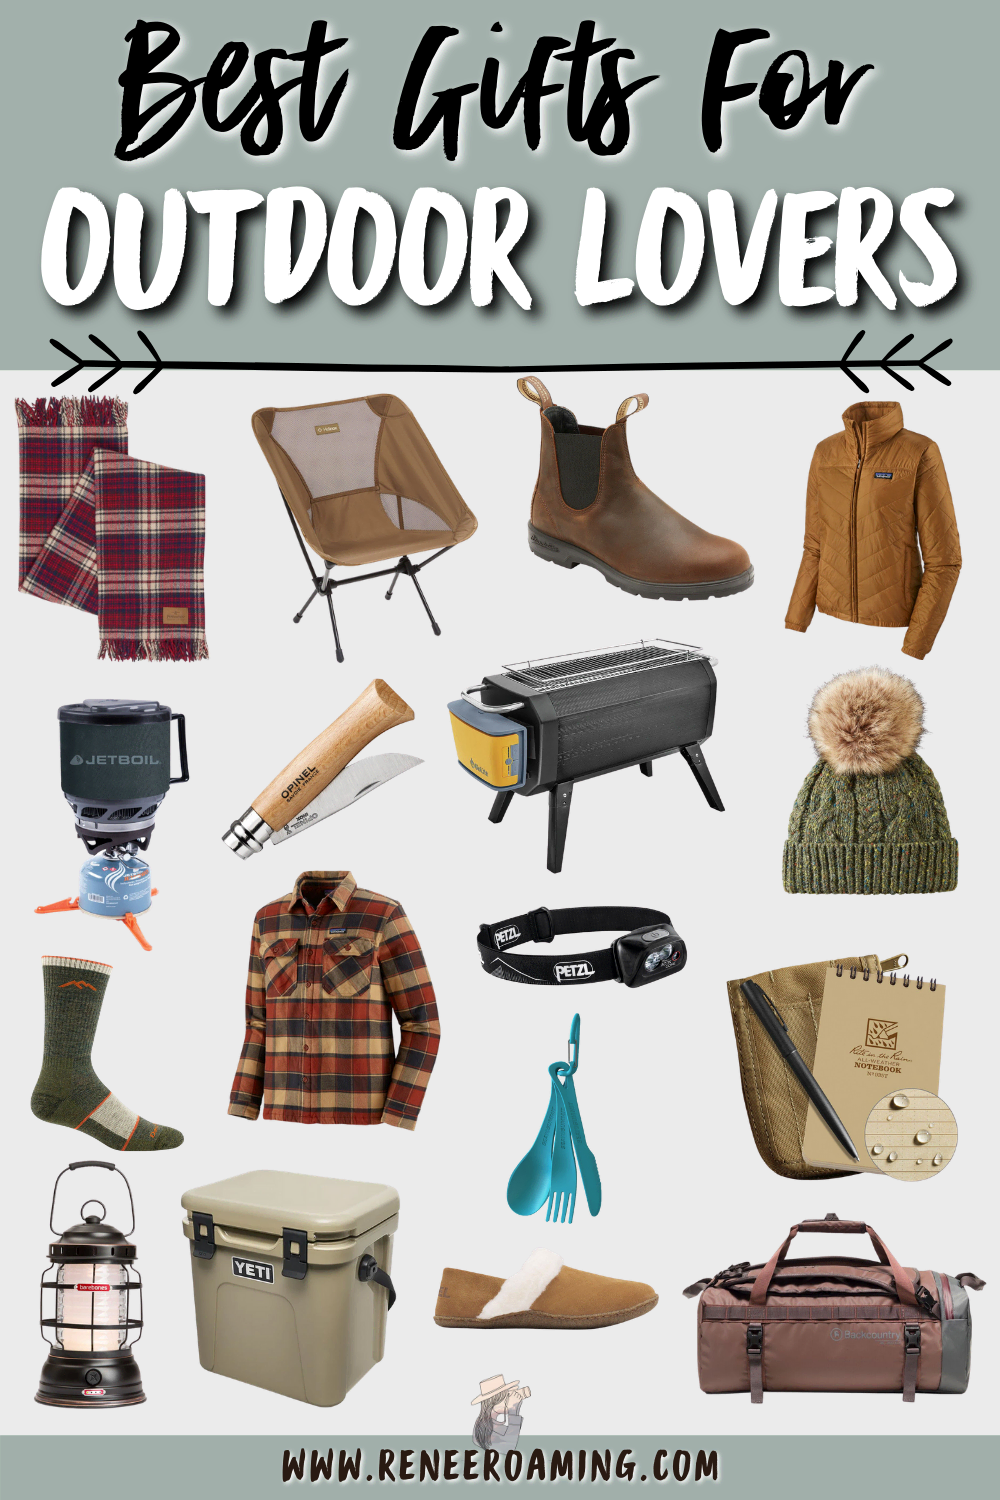 Best Gifts For Outdoor Lovers 2020 | Gifts for Hikers, Campers and Travelers